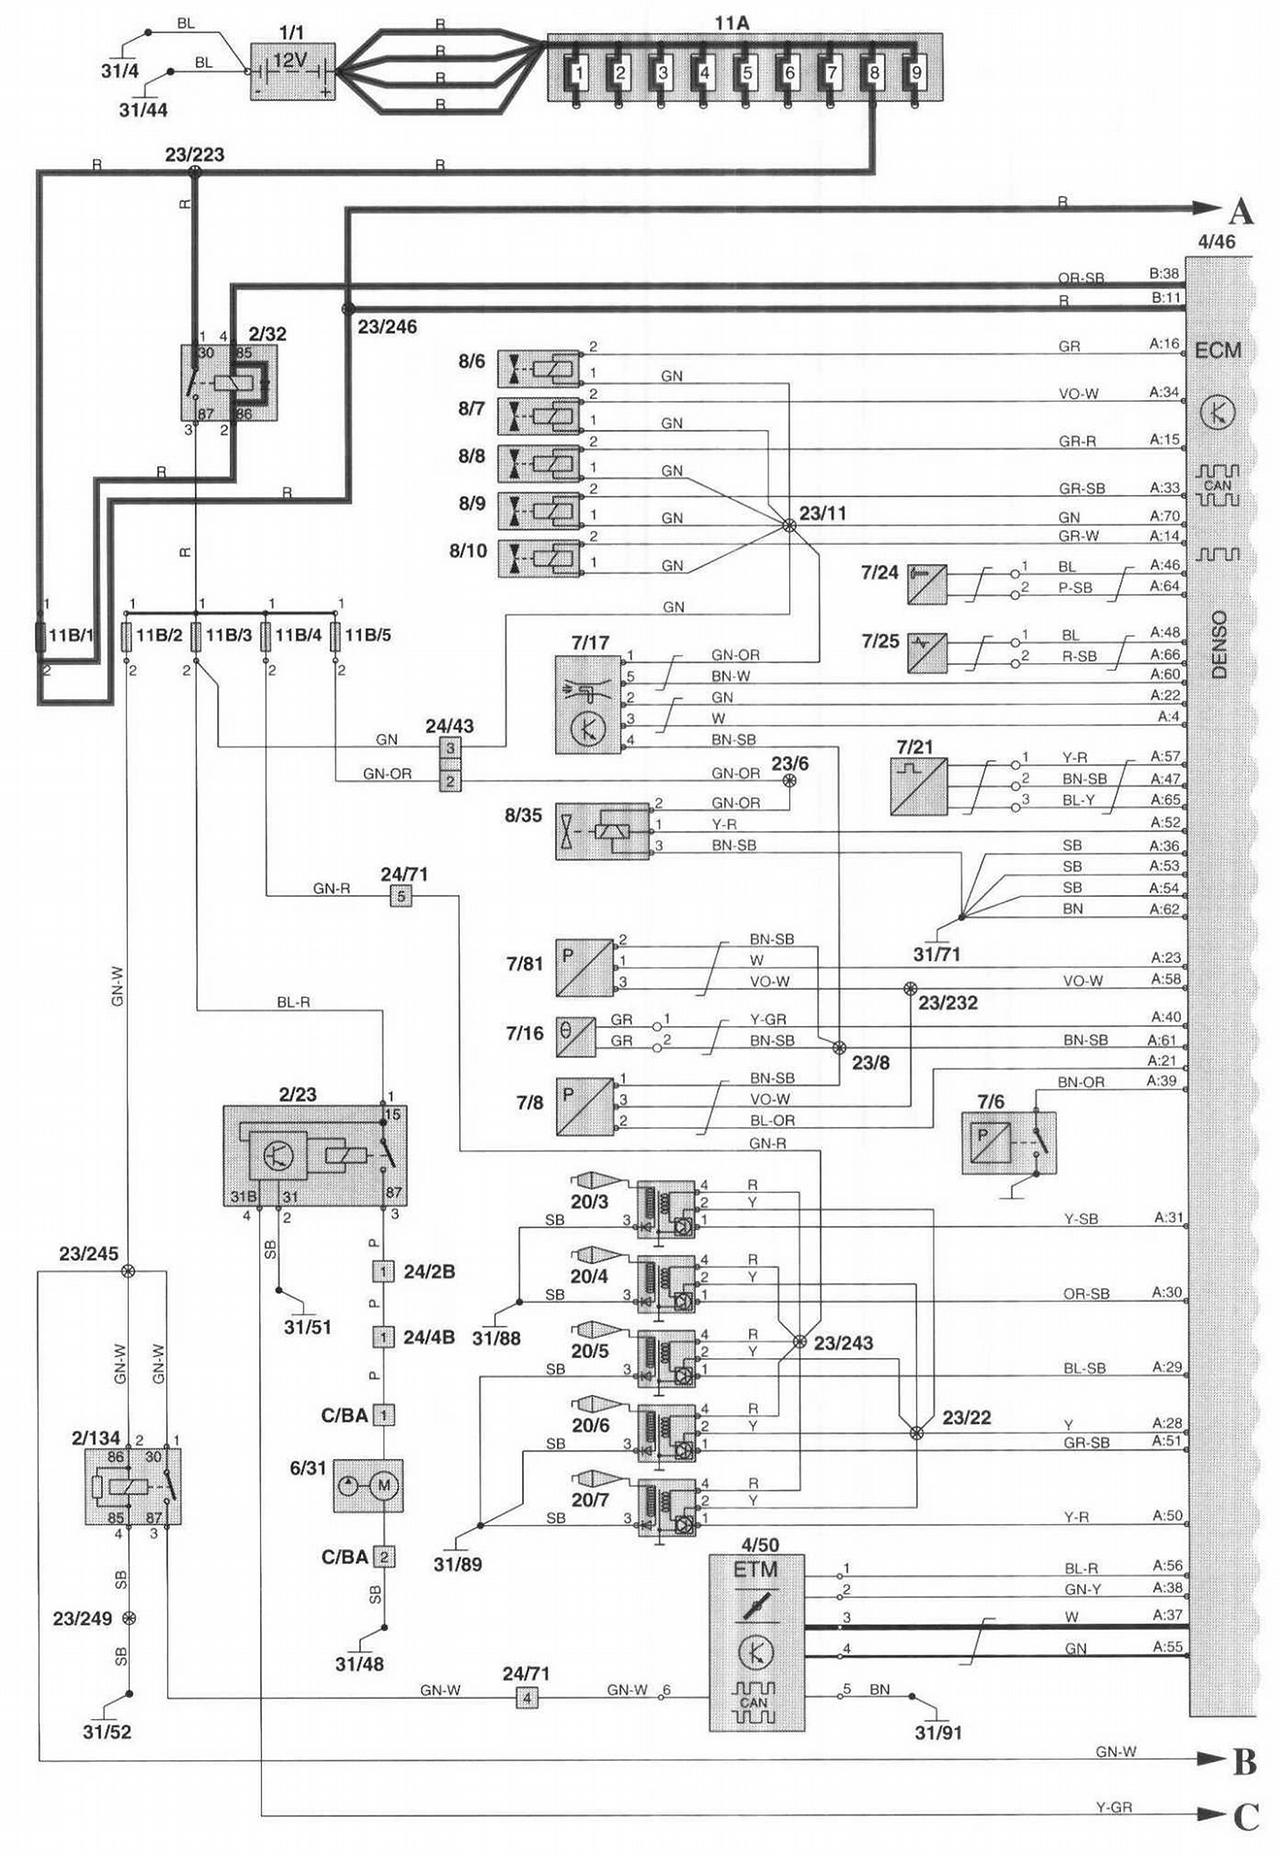 2000 Volvo S40 Wiring Diagram - daily update wiring diagram on volvo s40 body, volvo amazon wiring diagram, volvo s40 engine diagram, volvo s40 engine removal, volvo s40 brochure, volvo s40 speaker, volvo ignition wiring diagram, volvo s40 frame, volvo s40 valve cover removal, volvo s40 vacuum diagram, volvo s40 antenna, volvo s40 steering diagram, volvo s40 firing order, volvo s40 ignition switch, volvo s40 engine problems, volvo s40 stereo diagram, volvo s40 relay location, volvo s40 thermostat, volvo s40 coolant diagram, volvo s40 starter,